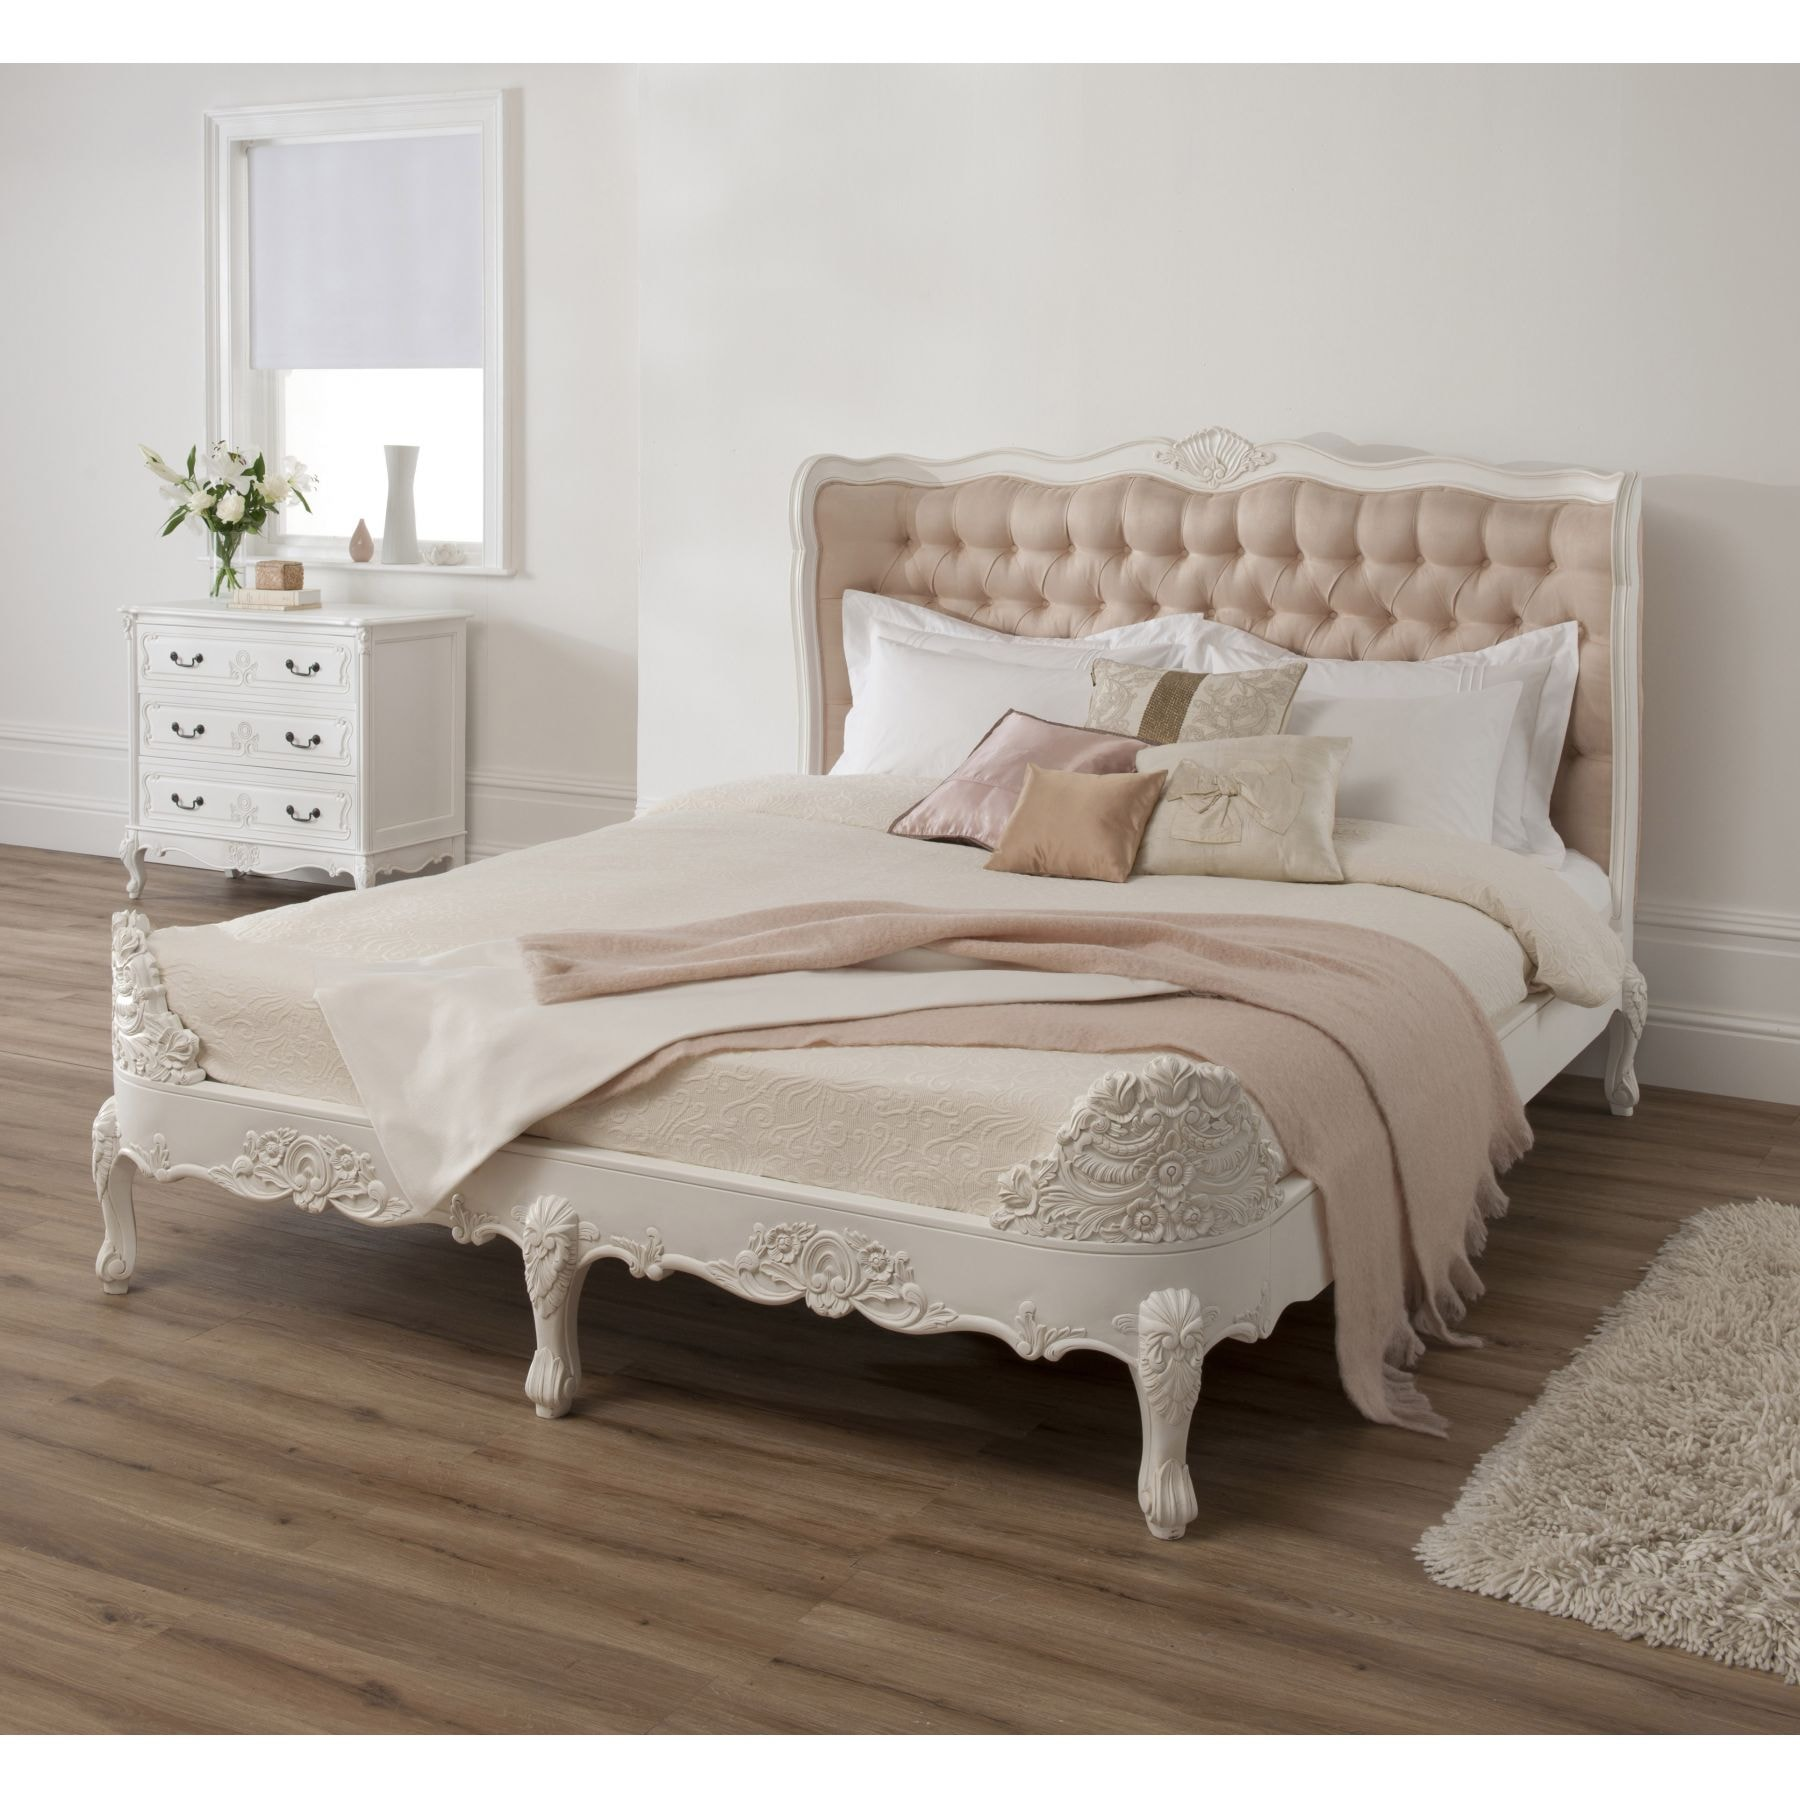 frame nesttun size white king bed beds bedroom double ikea en